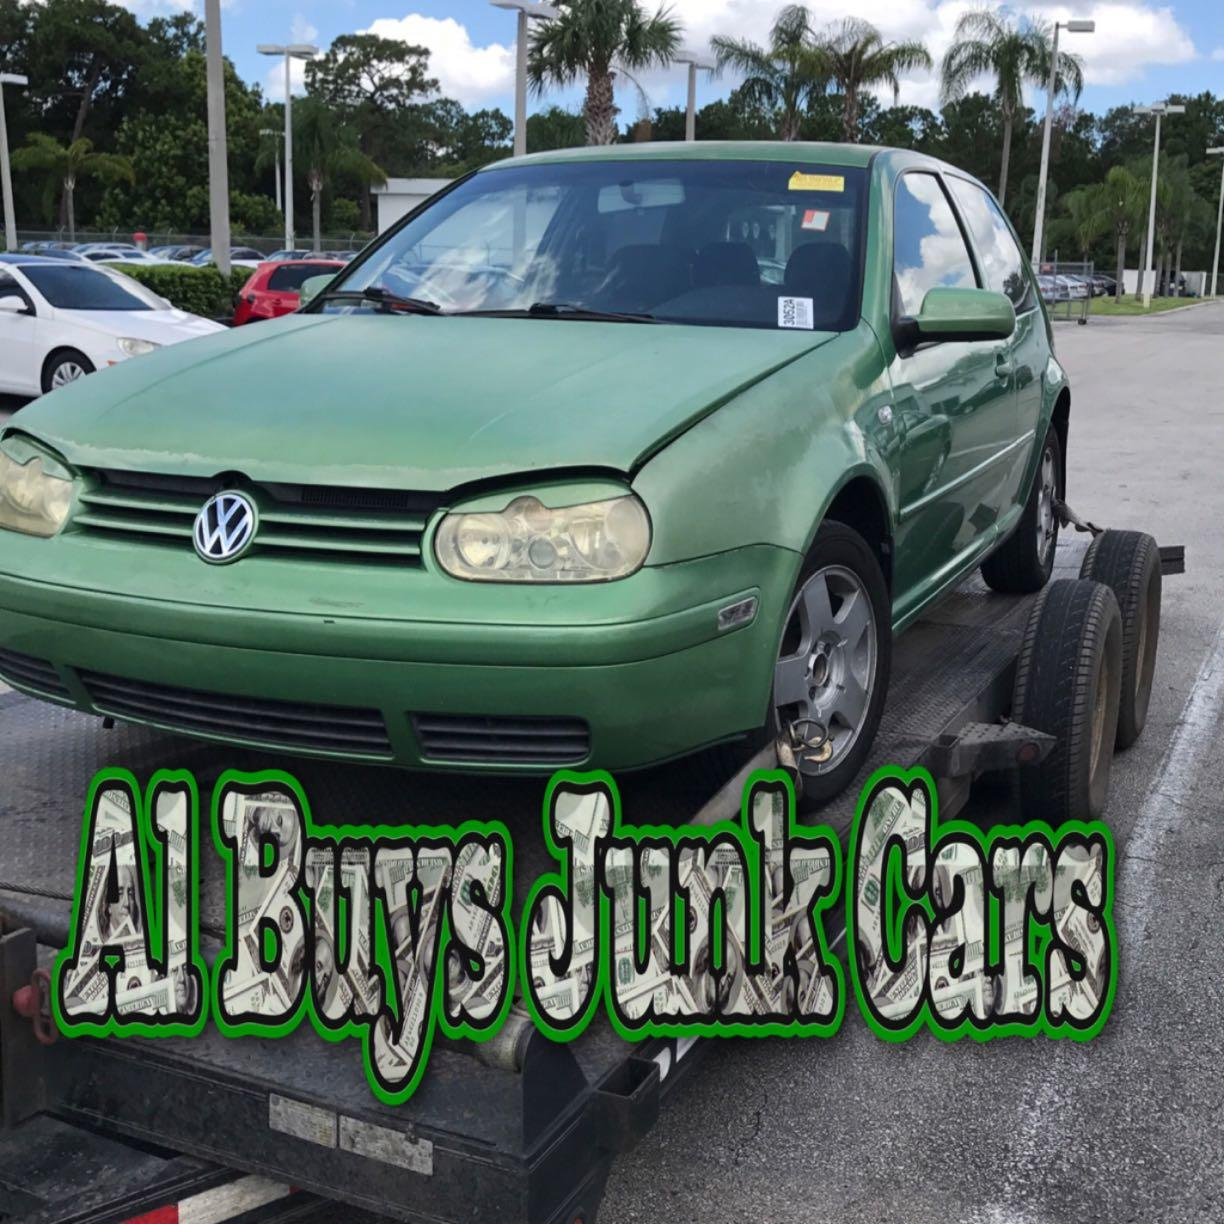 Cash For Junk Cars Online Quote About Us  Al Buys Junk Cars  Orlando Salvage Yard Junkyard